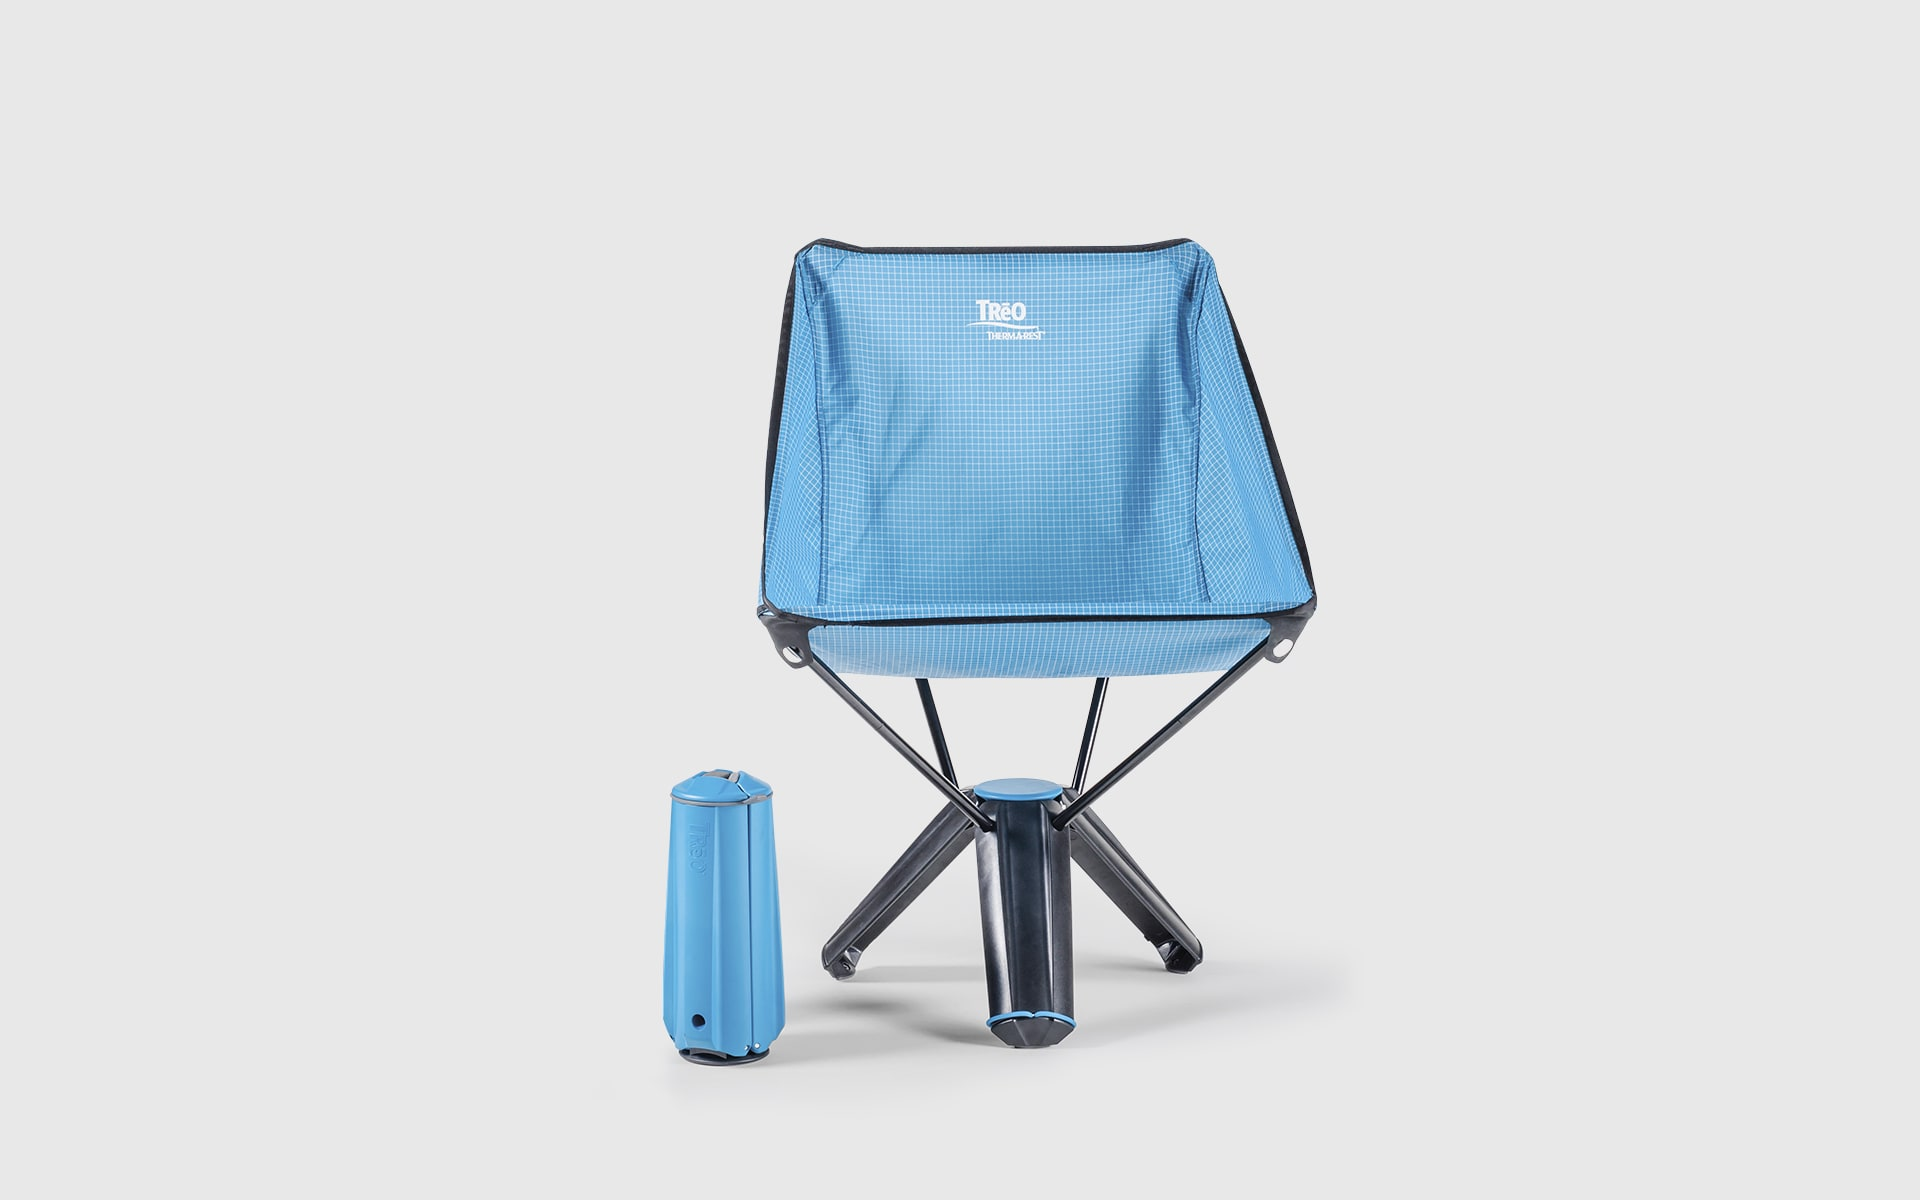 Collapsable outdoor chair Therm-a-Rest Treo by ITO Design in blue